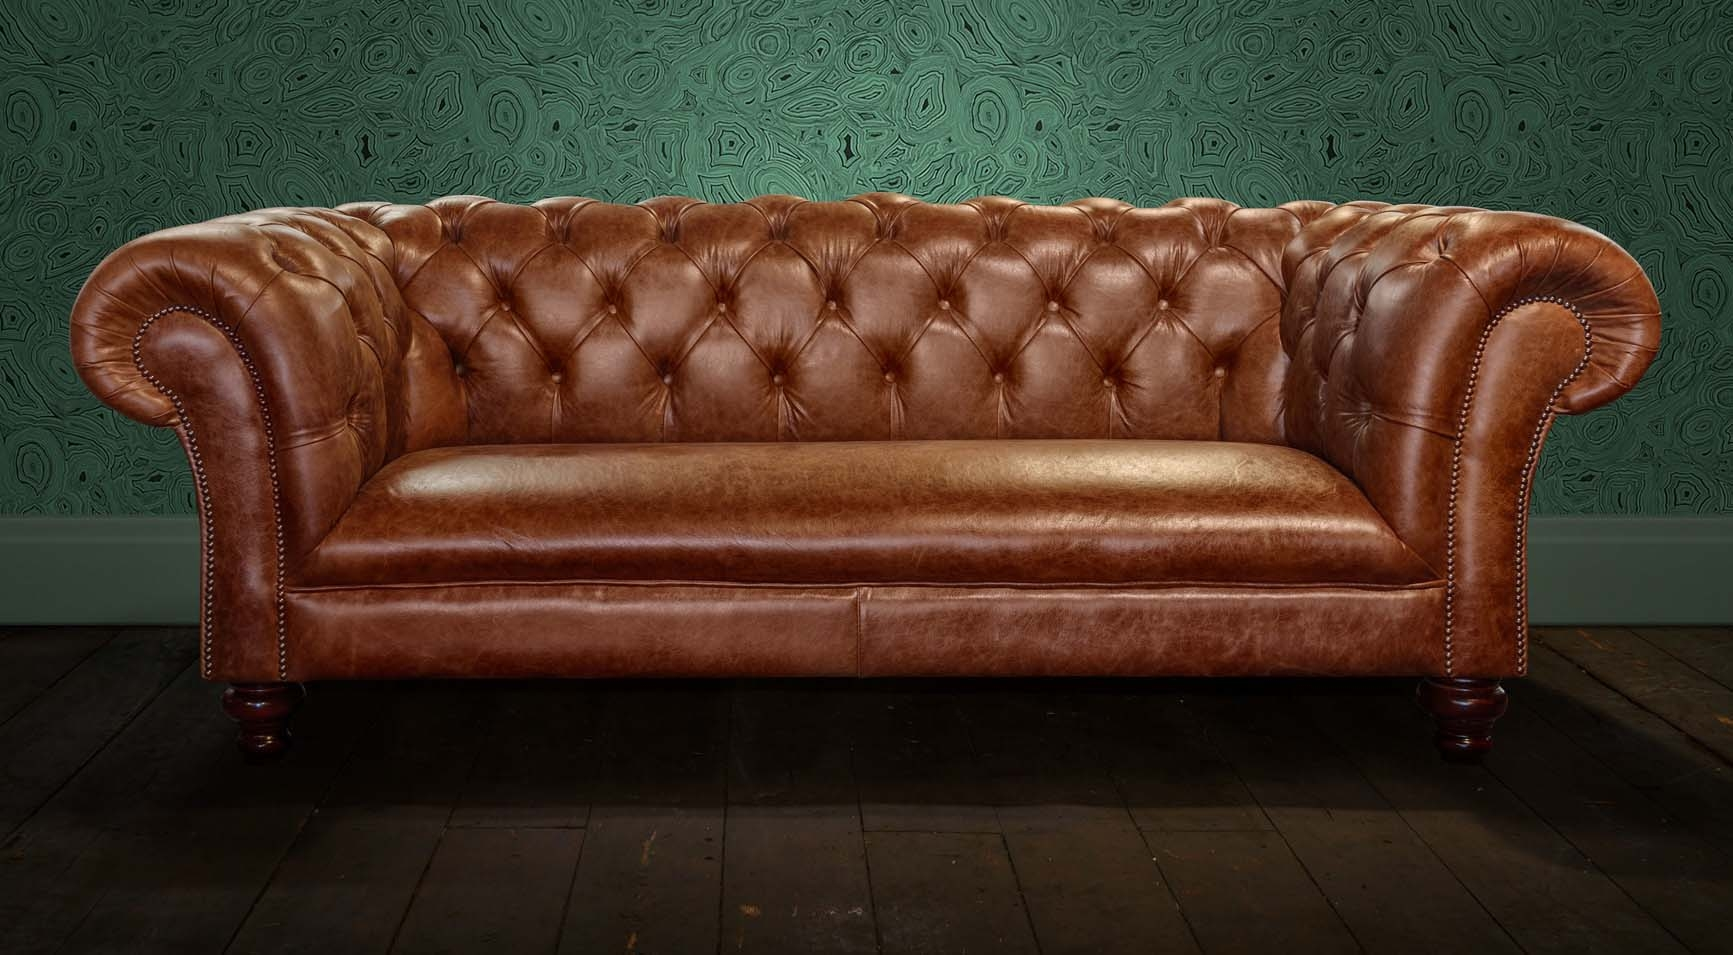 Chesterfields Of England The Original Chesterfield Company With Chesterfield Sofas (Image 10 of 15)